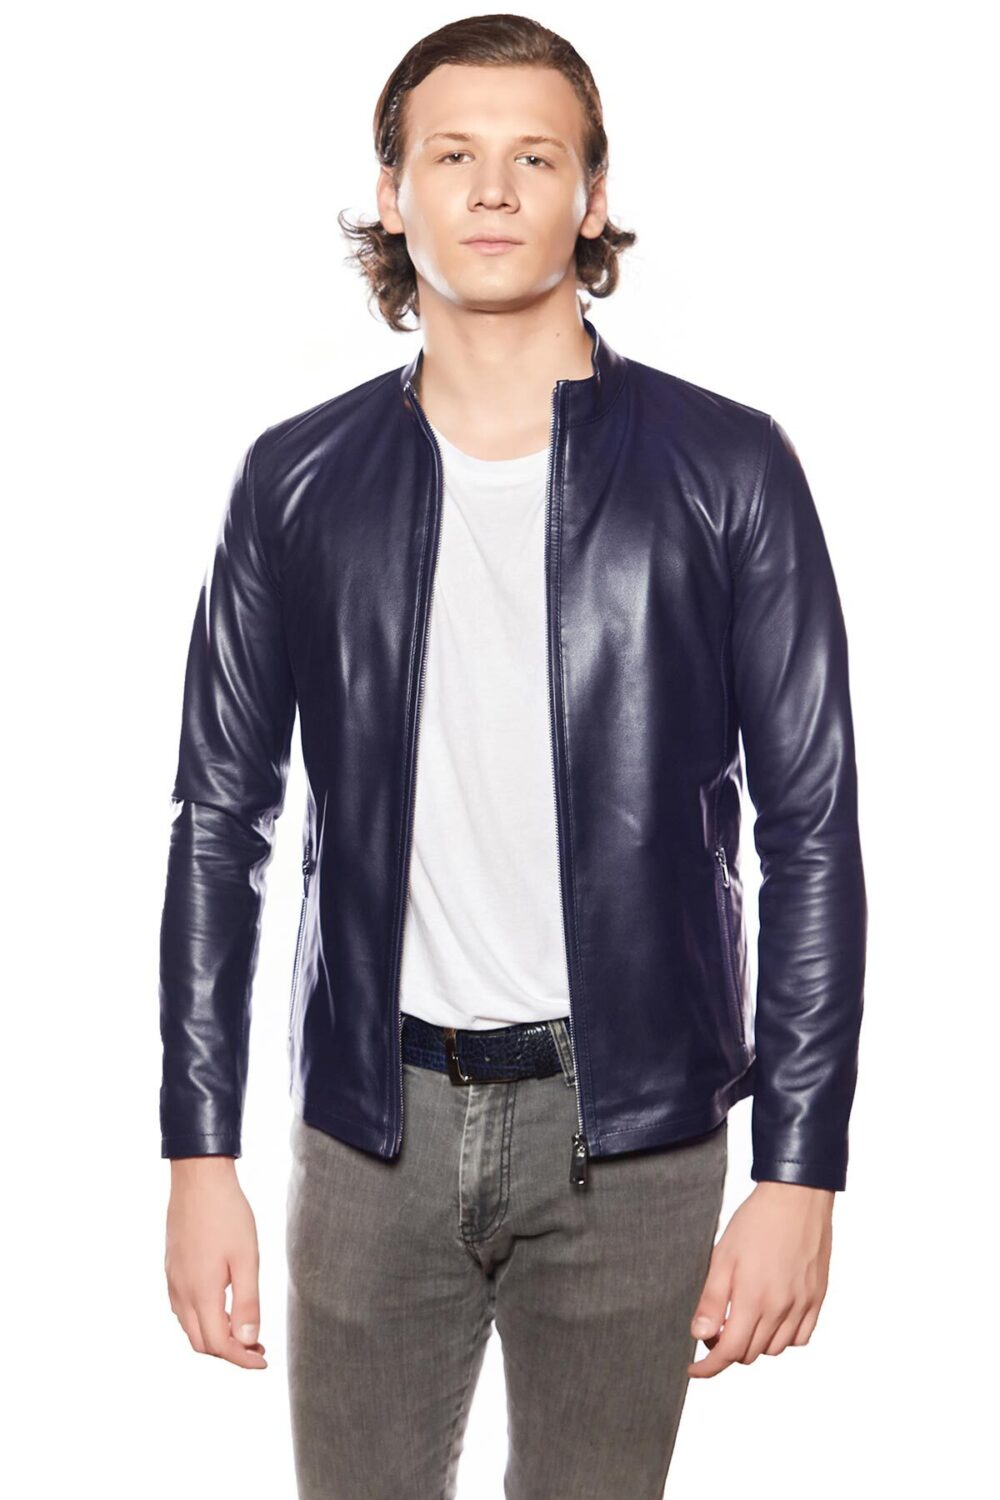 what is the price of leather jacket